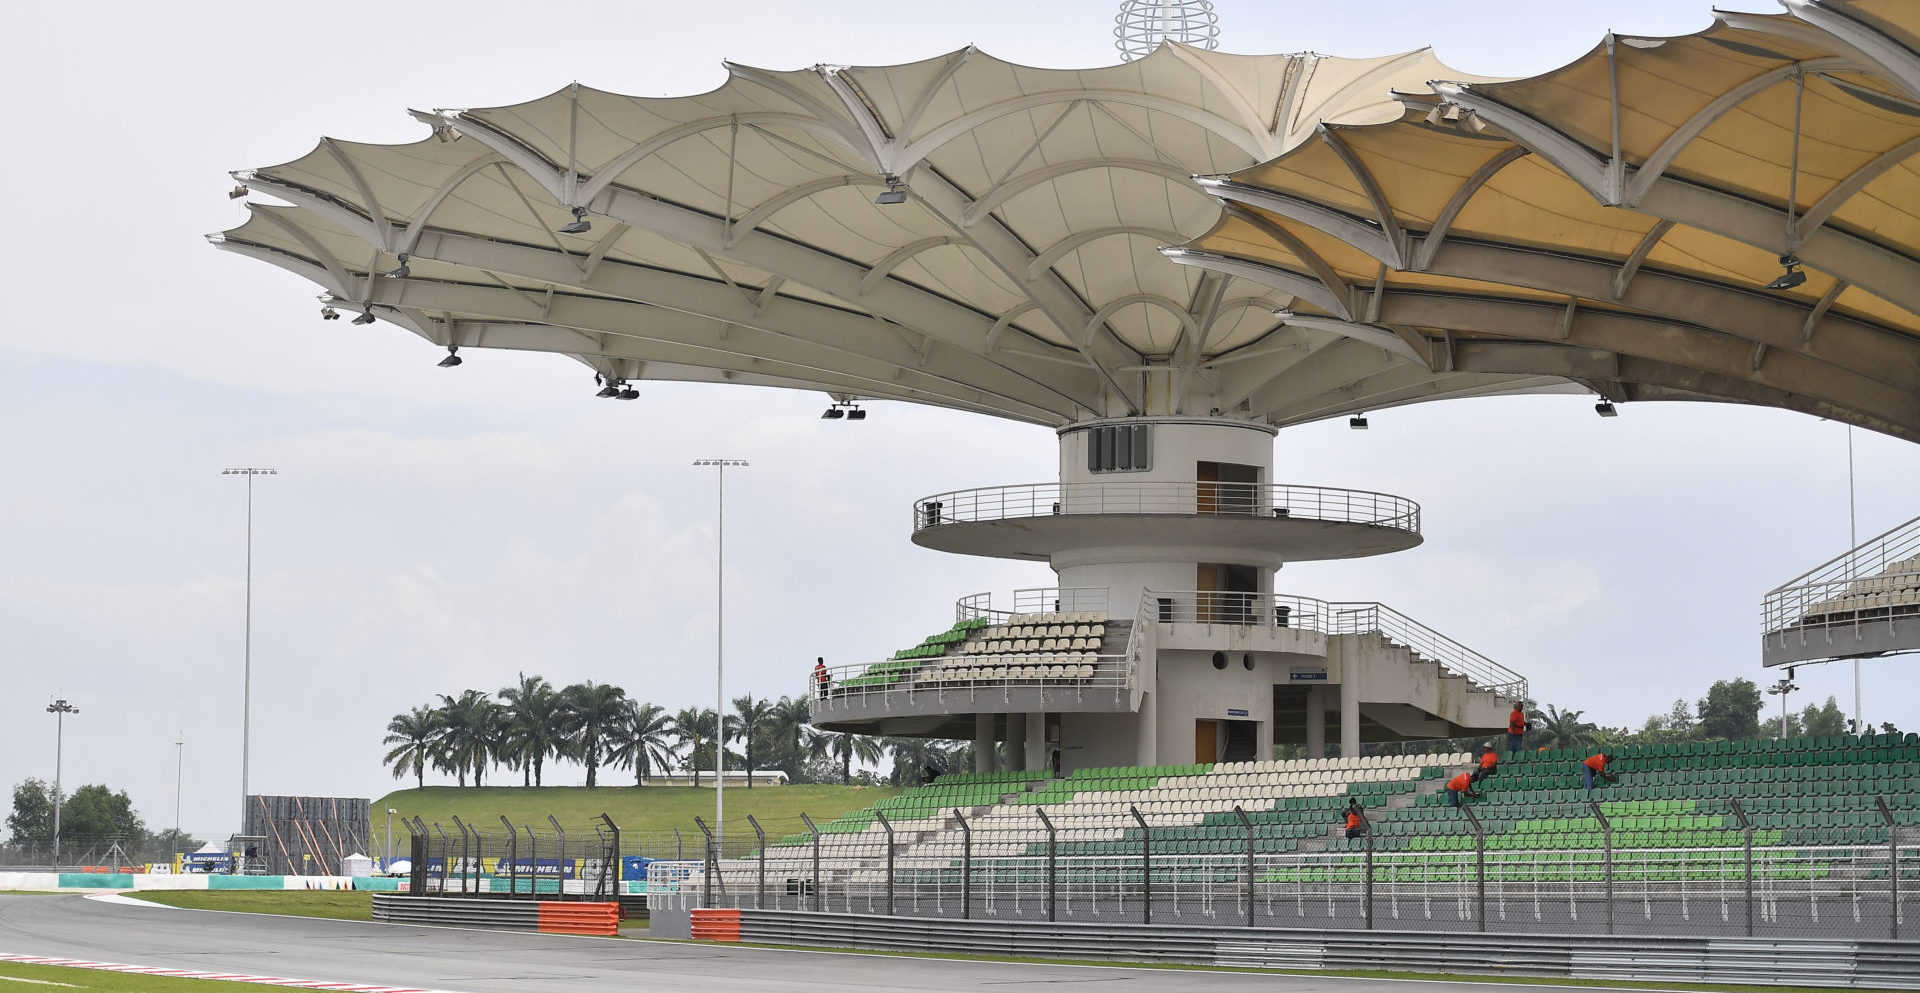 The iconic grandstands at Sepang International Circuit. Photo courtesy of Michelin.